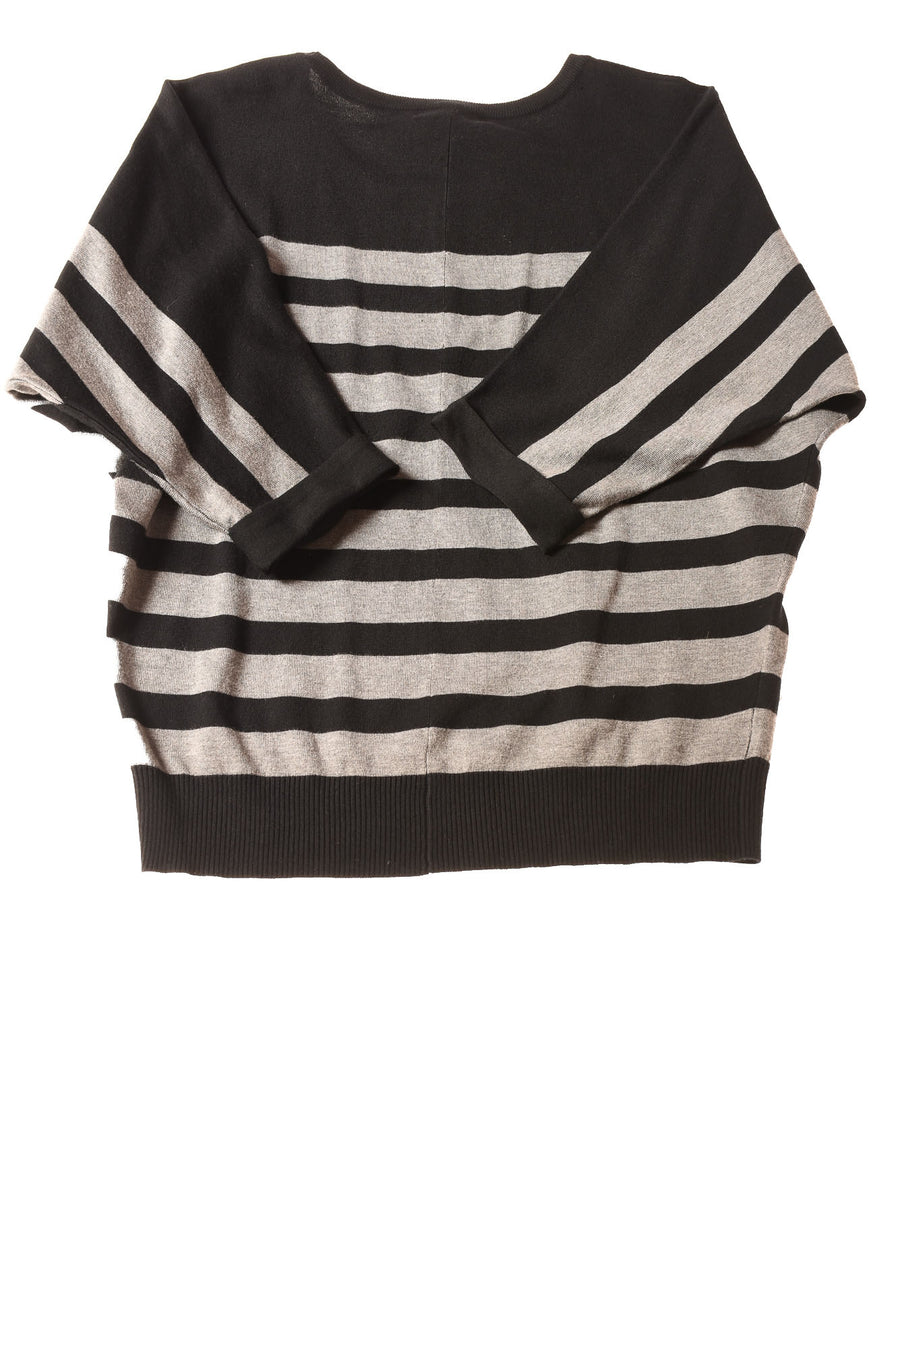 NEW Chelsea & Theodore Women's Sweater X-Large Black & Gray / Striped